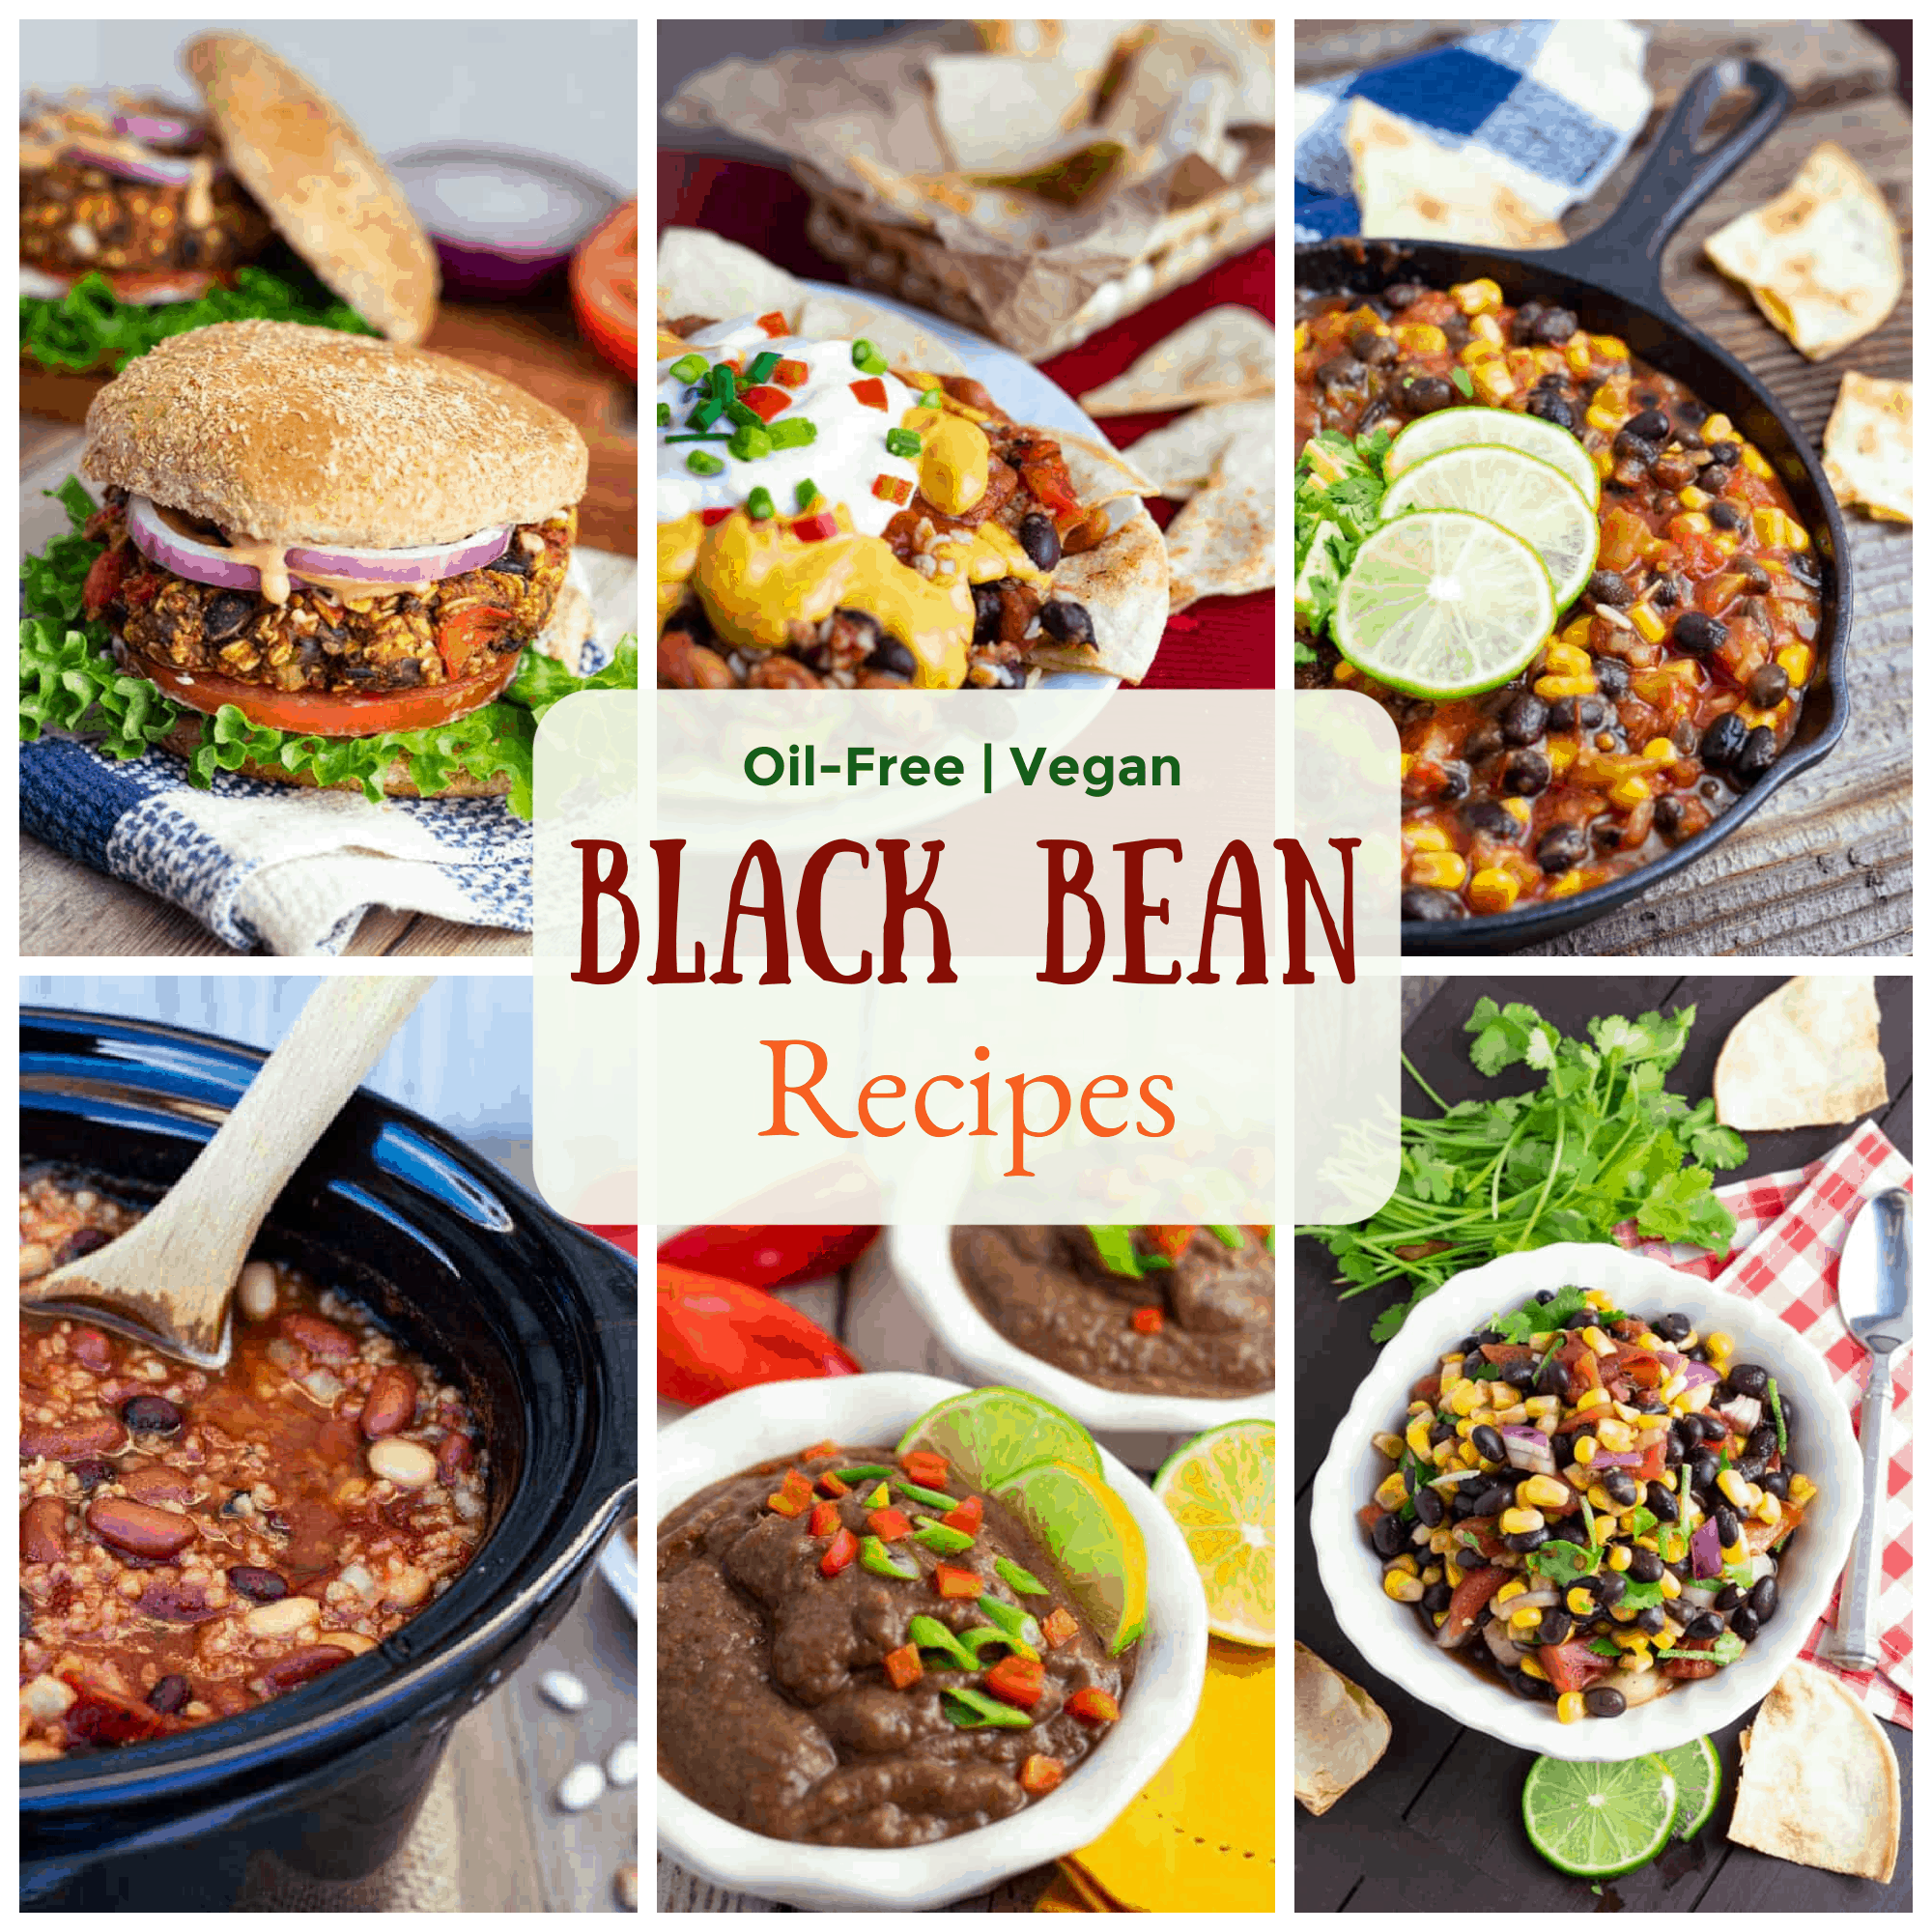 Amazing Black Bean Recipes Eatplant Based